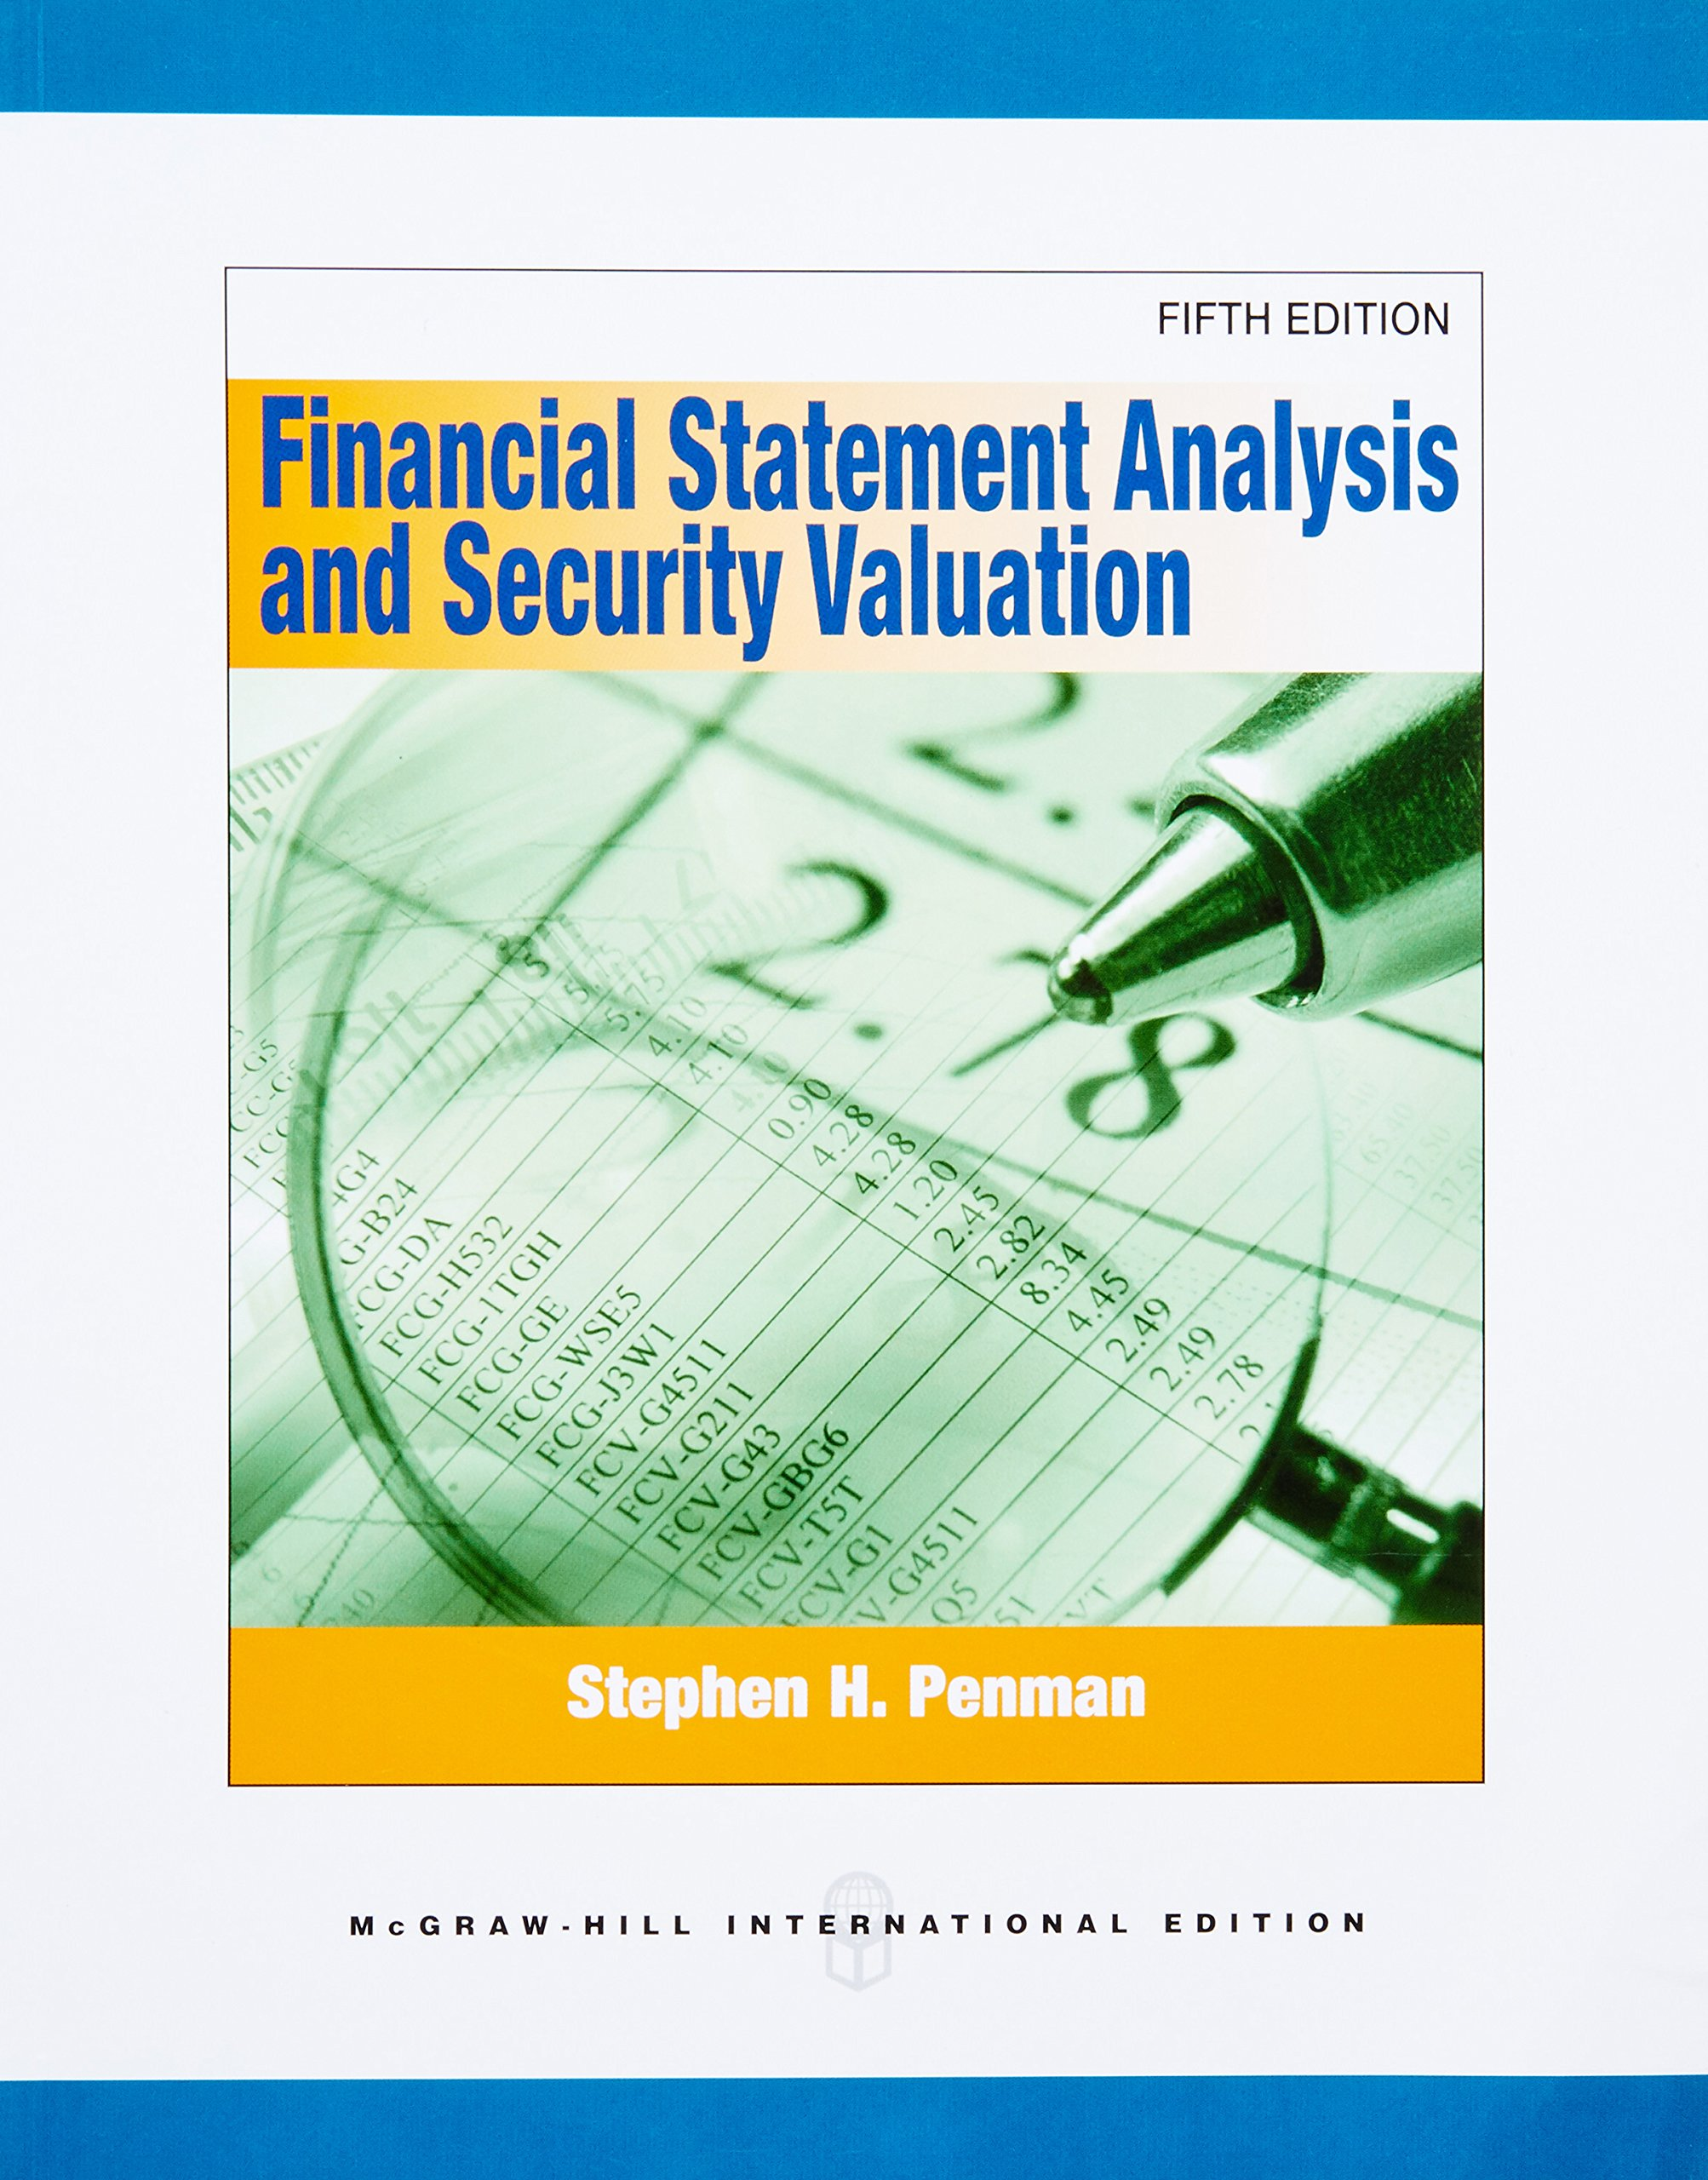 Buy Financial Statement Analysis And Security Valuation (Intu0027l Ed) Book  Online At Low Prices In India | Financial Statement Analysis And Security  Valuation ...